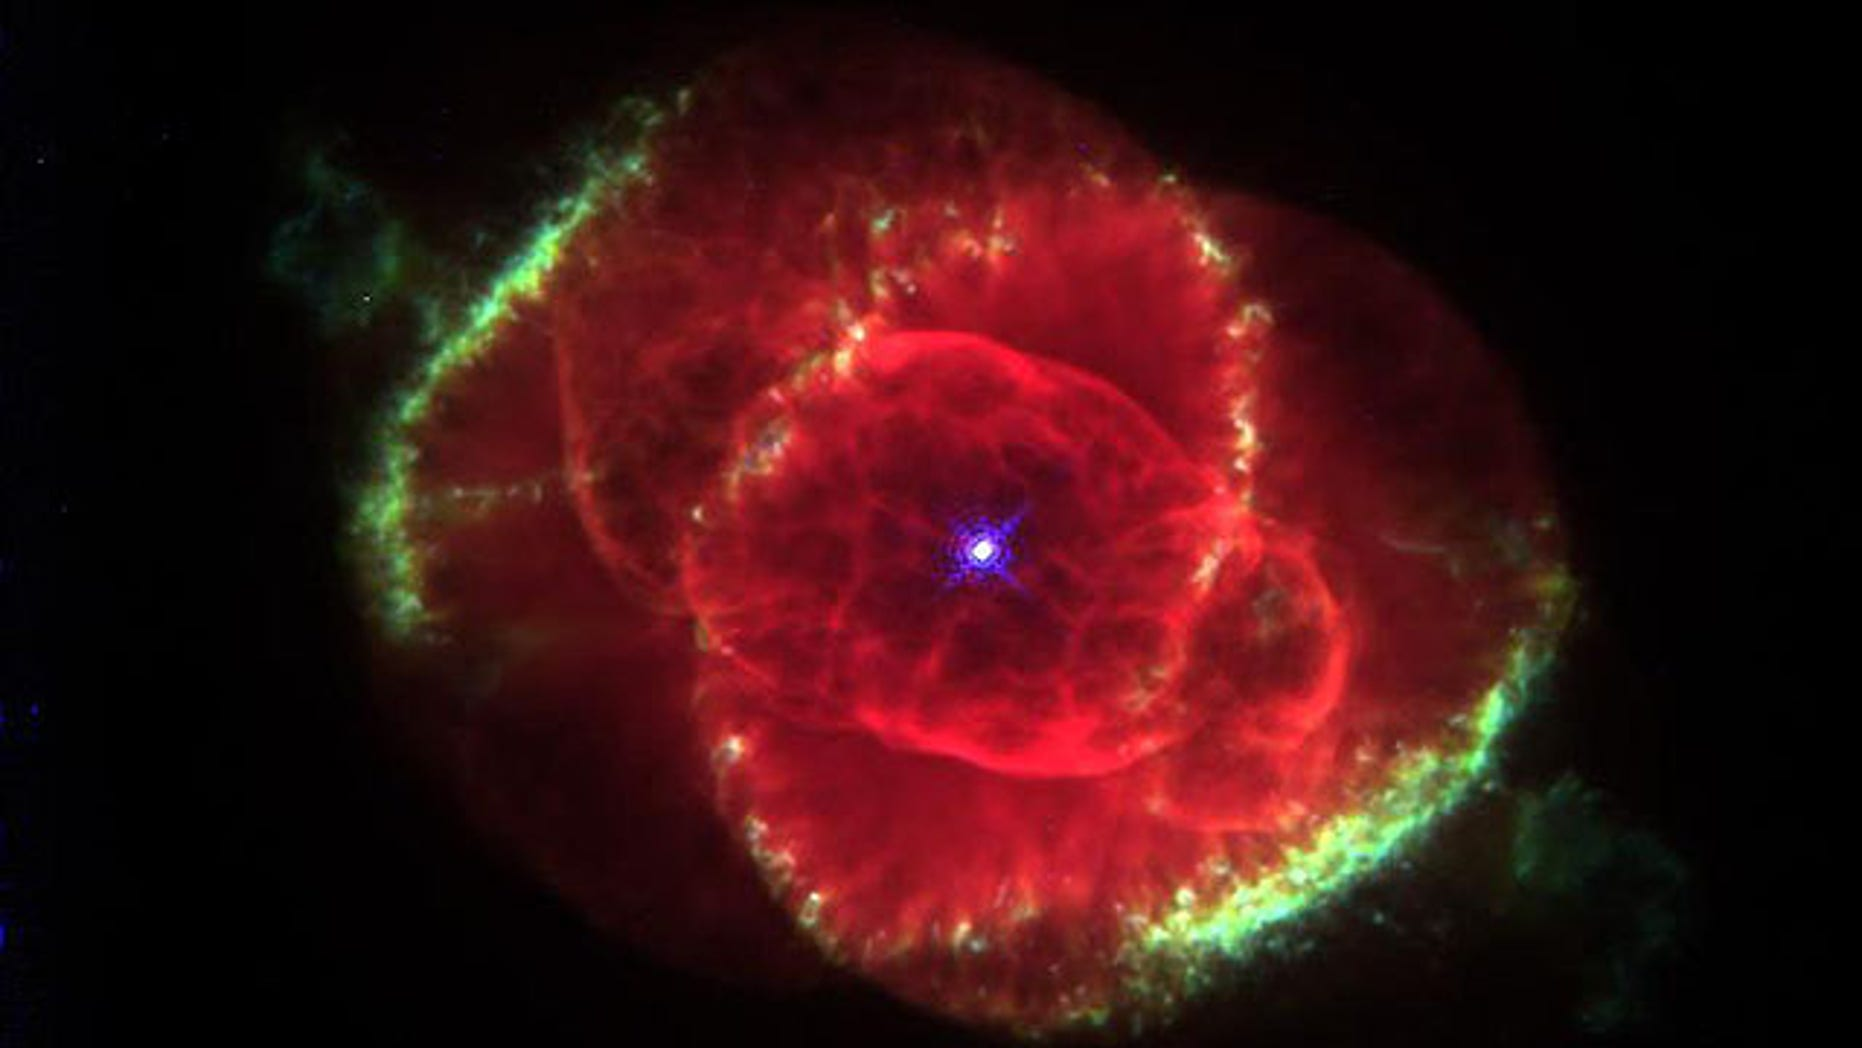 Three thousand light-years away, a dying star throws off shells of glowing gas in this image from the Hubble Space Telescope of the Cat's Eye Nebula.